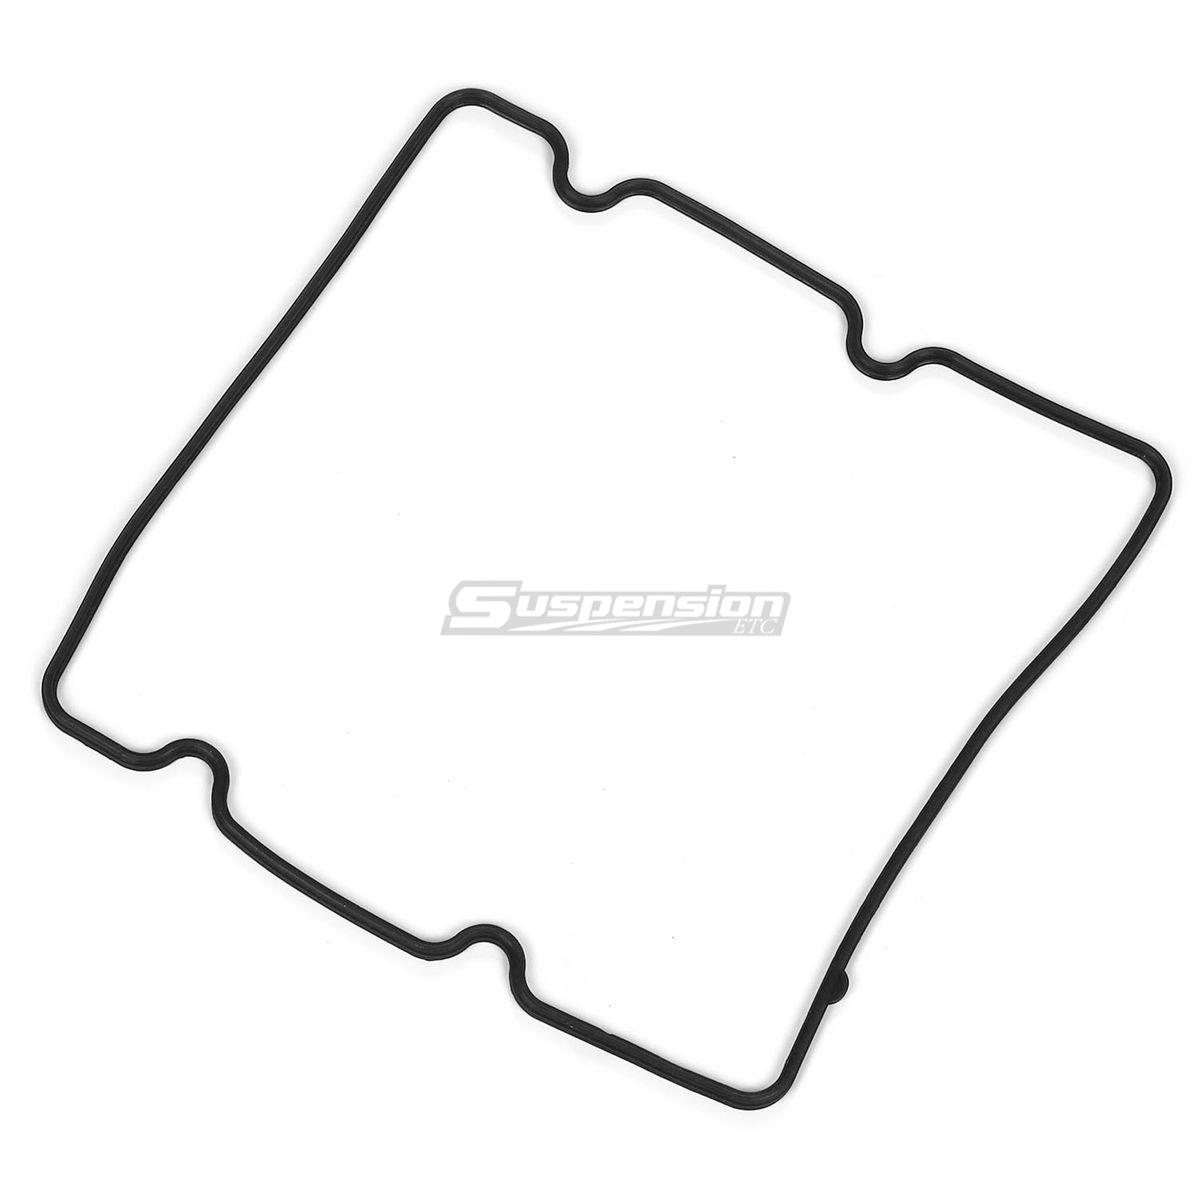 High Pressure Oil Pump Cover Gasket For Ford F250 F350 6.0